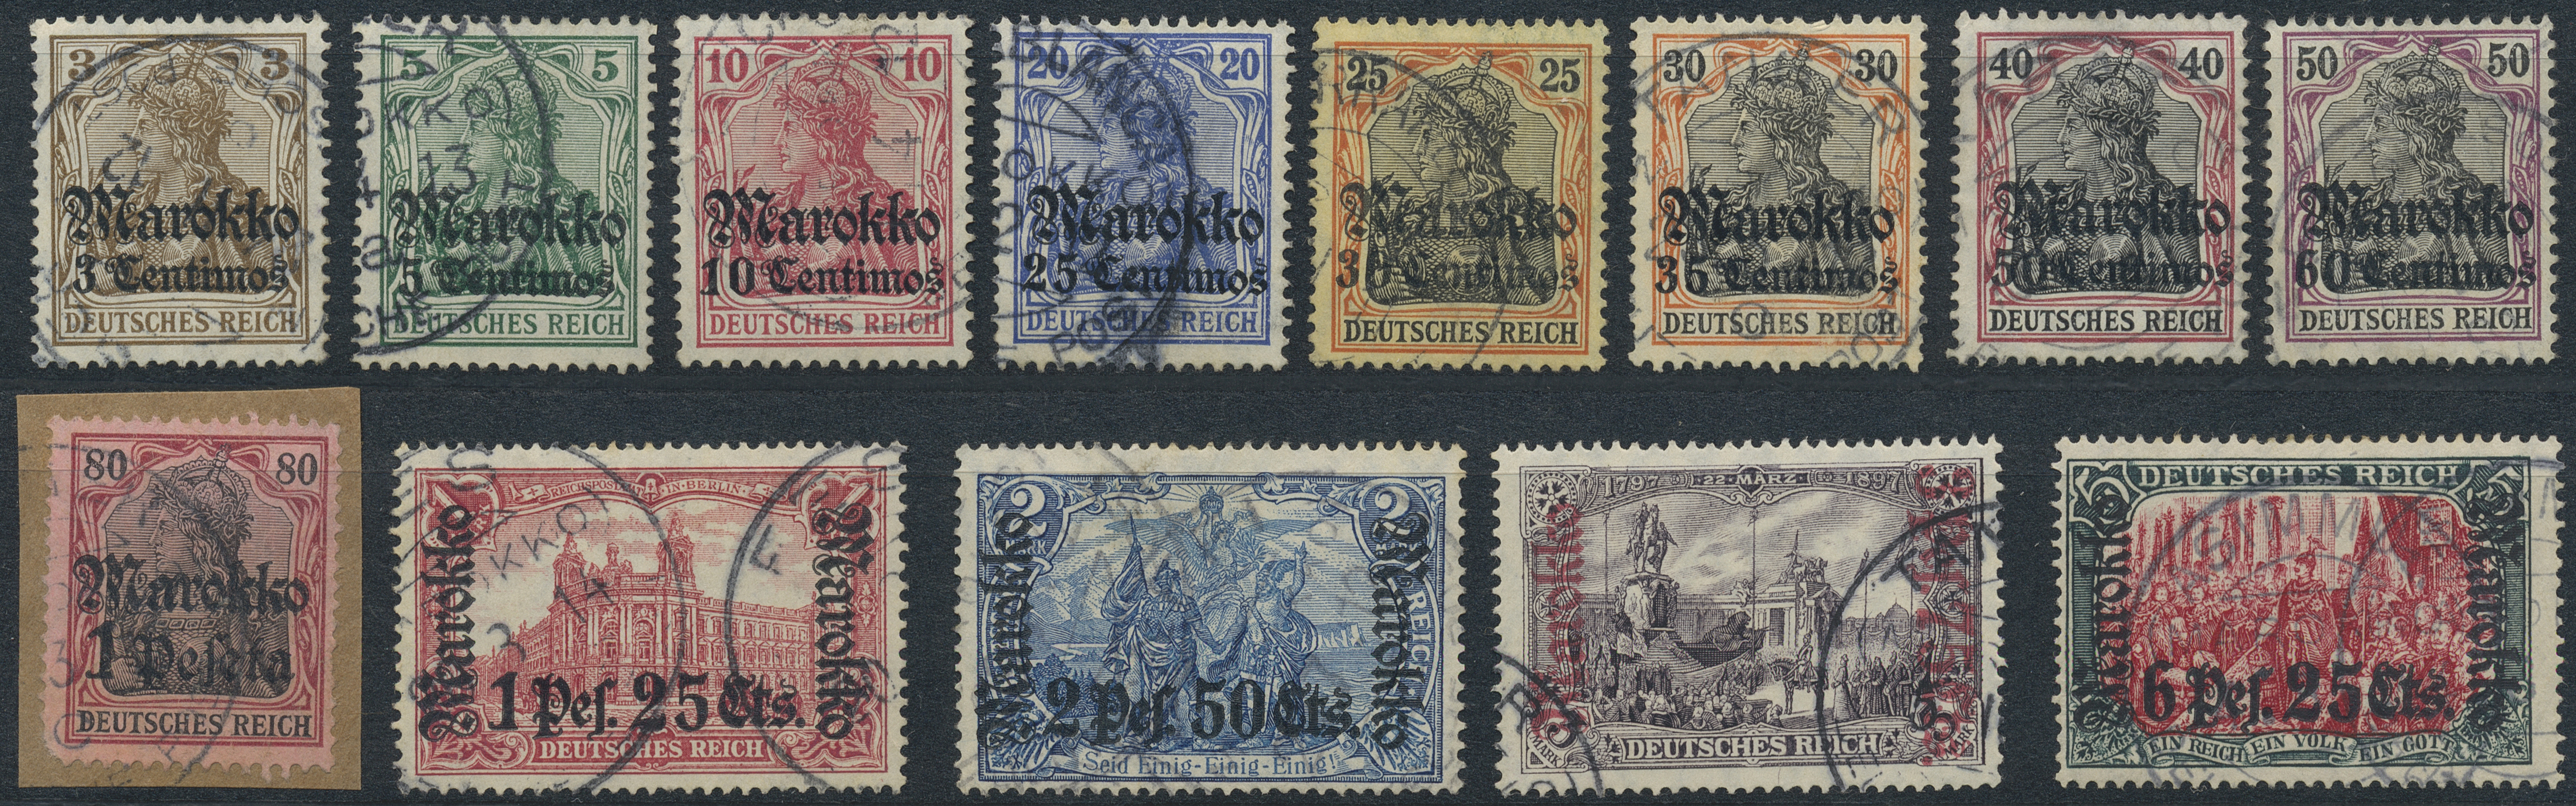 Lot 37234 - deutsche kolonien  -  Auktionshaus Christoph Gärtner GmbH & Co. KG Collections Germany,  Collections Supplement, Surprise boxes #39 Day 7